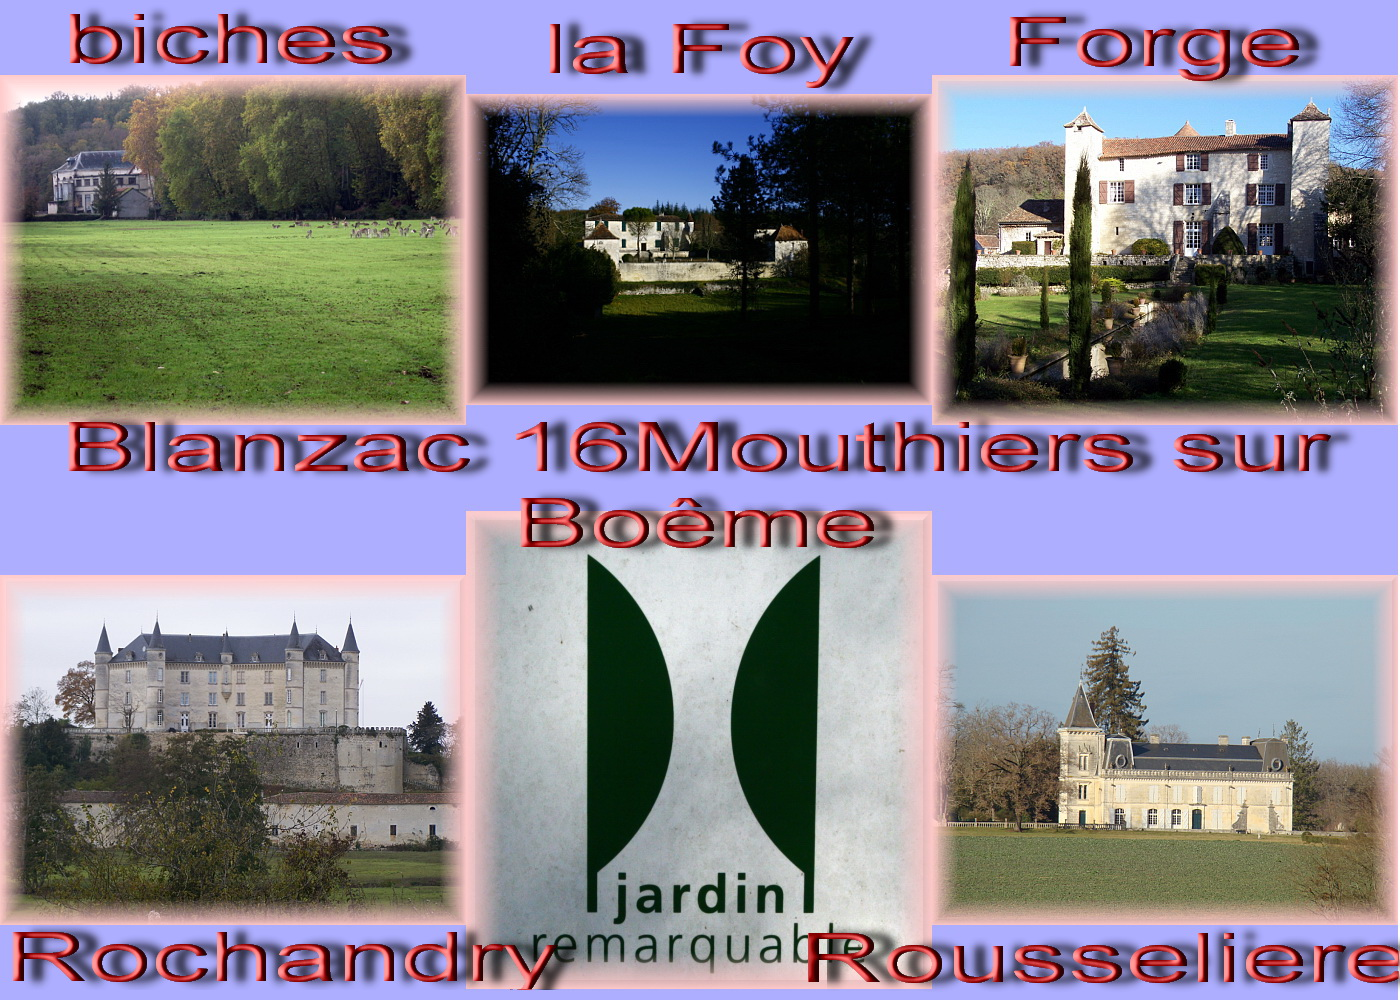 carte charente - 16 ang mouthier1